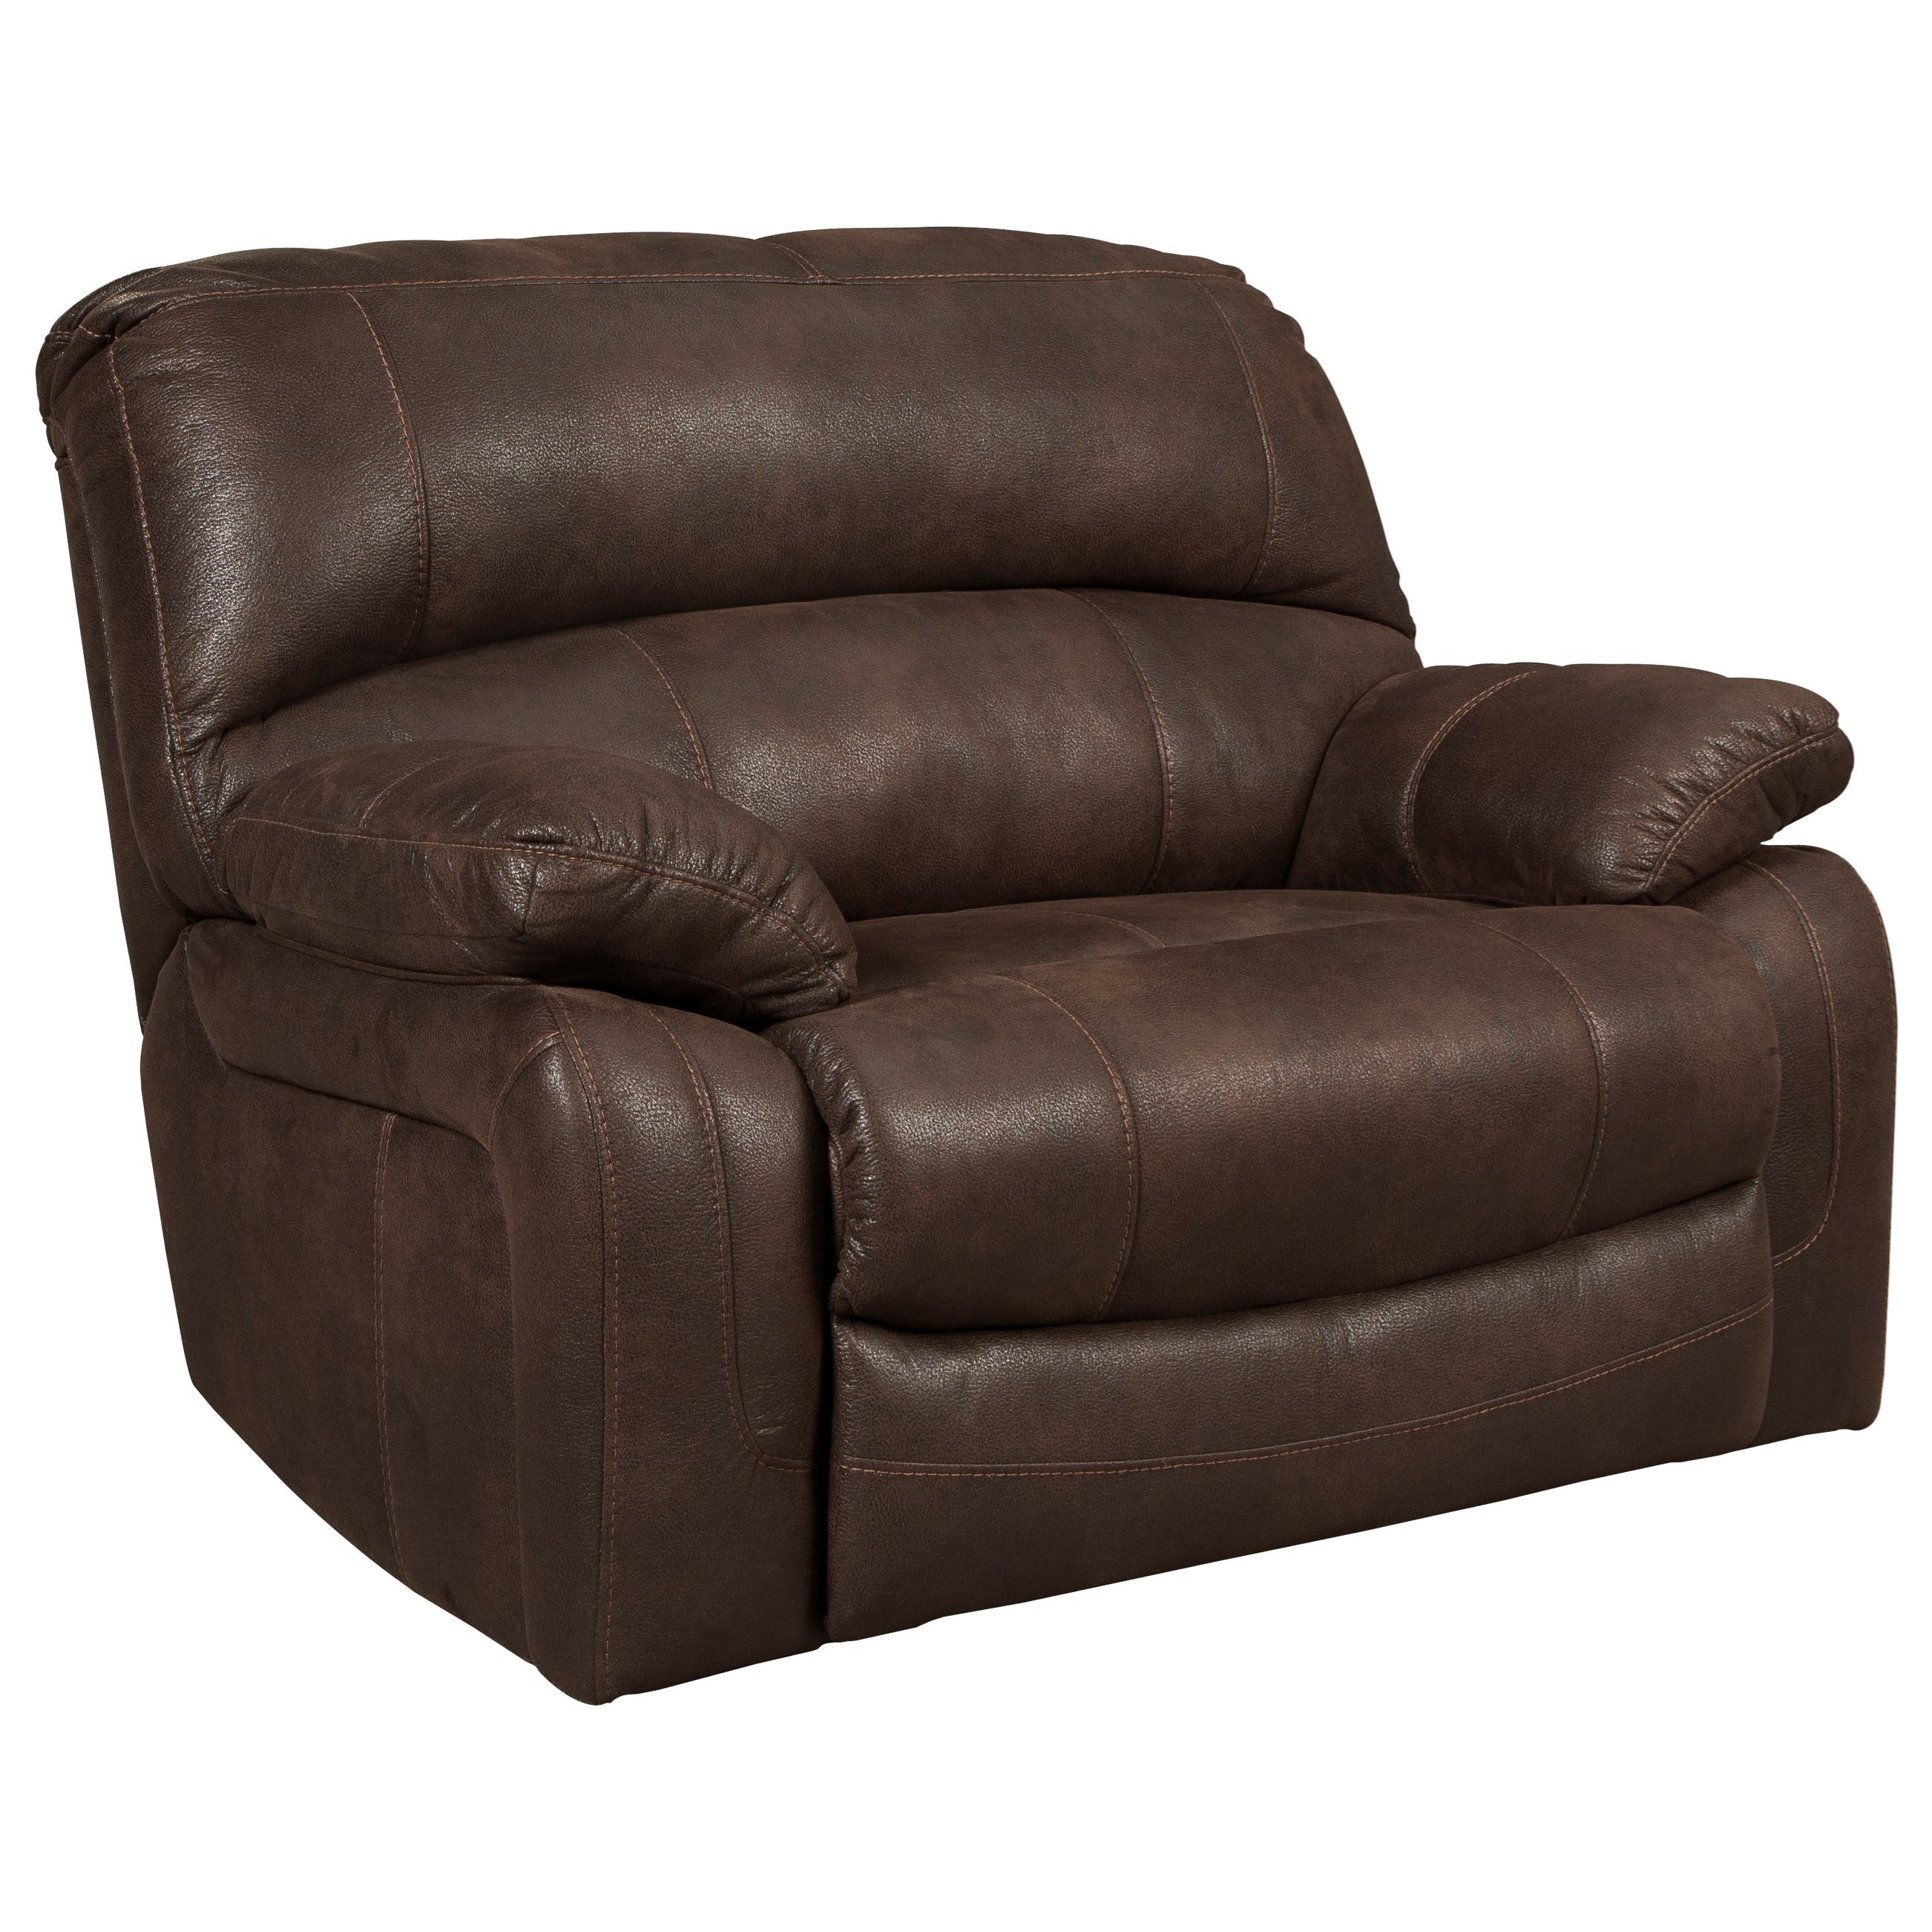 Ashley Signature Design Zavier 4290152 Wide Seat Recliner In Brown Faux Leather Dunk Bright